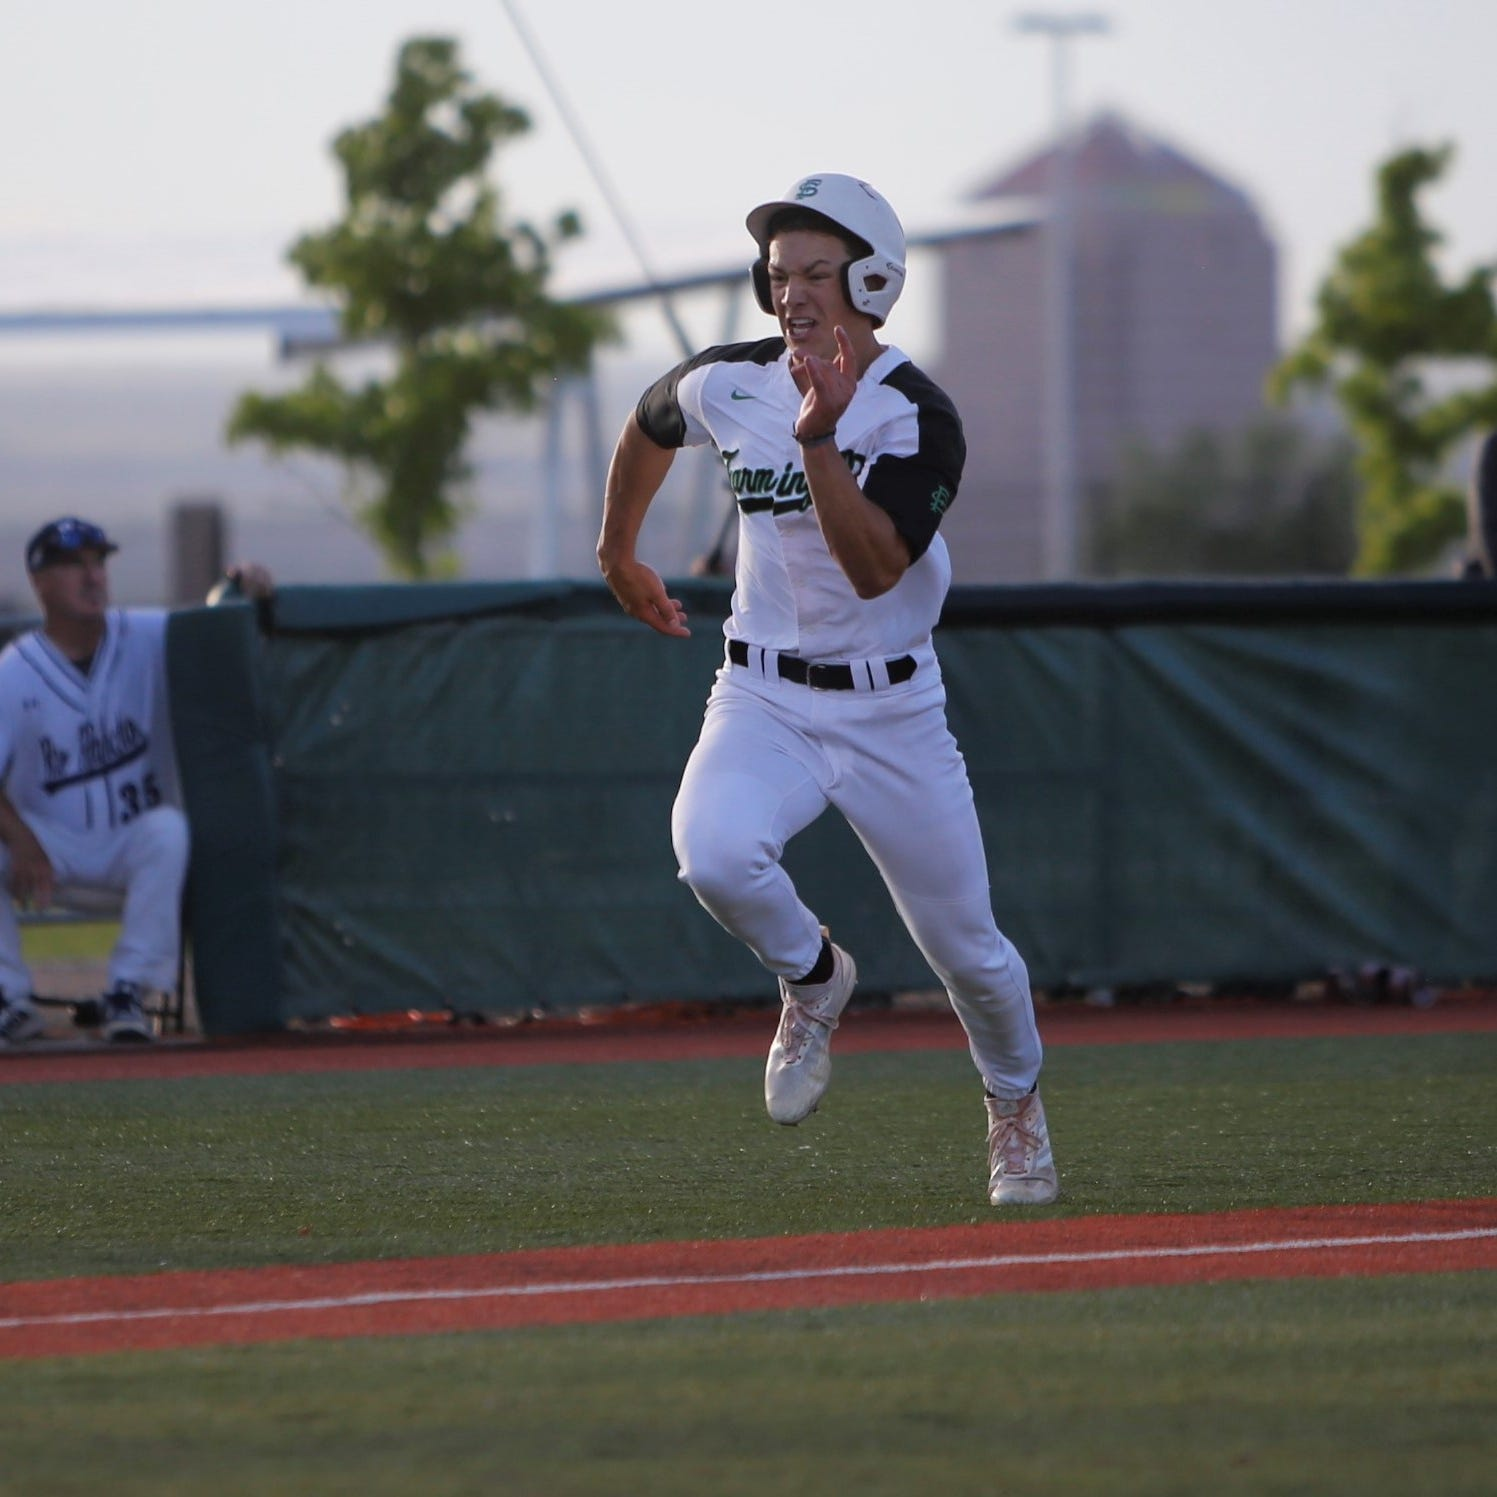 Scorps' upset bid falls short vs. Rio Rancho